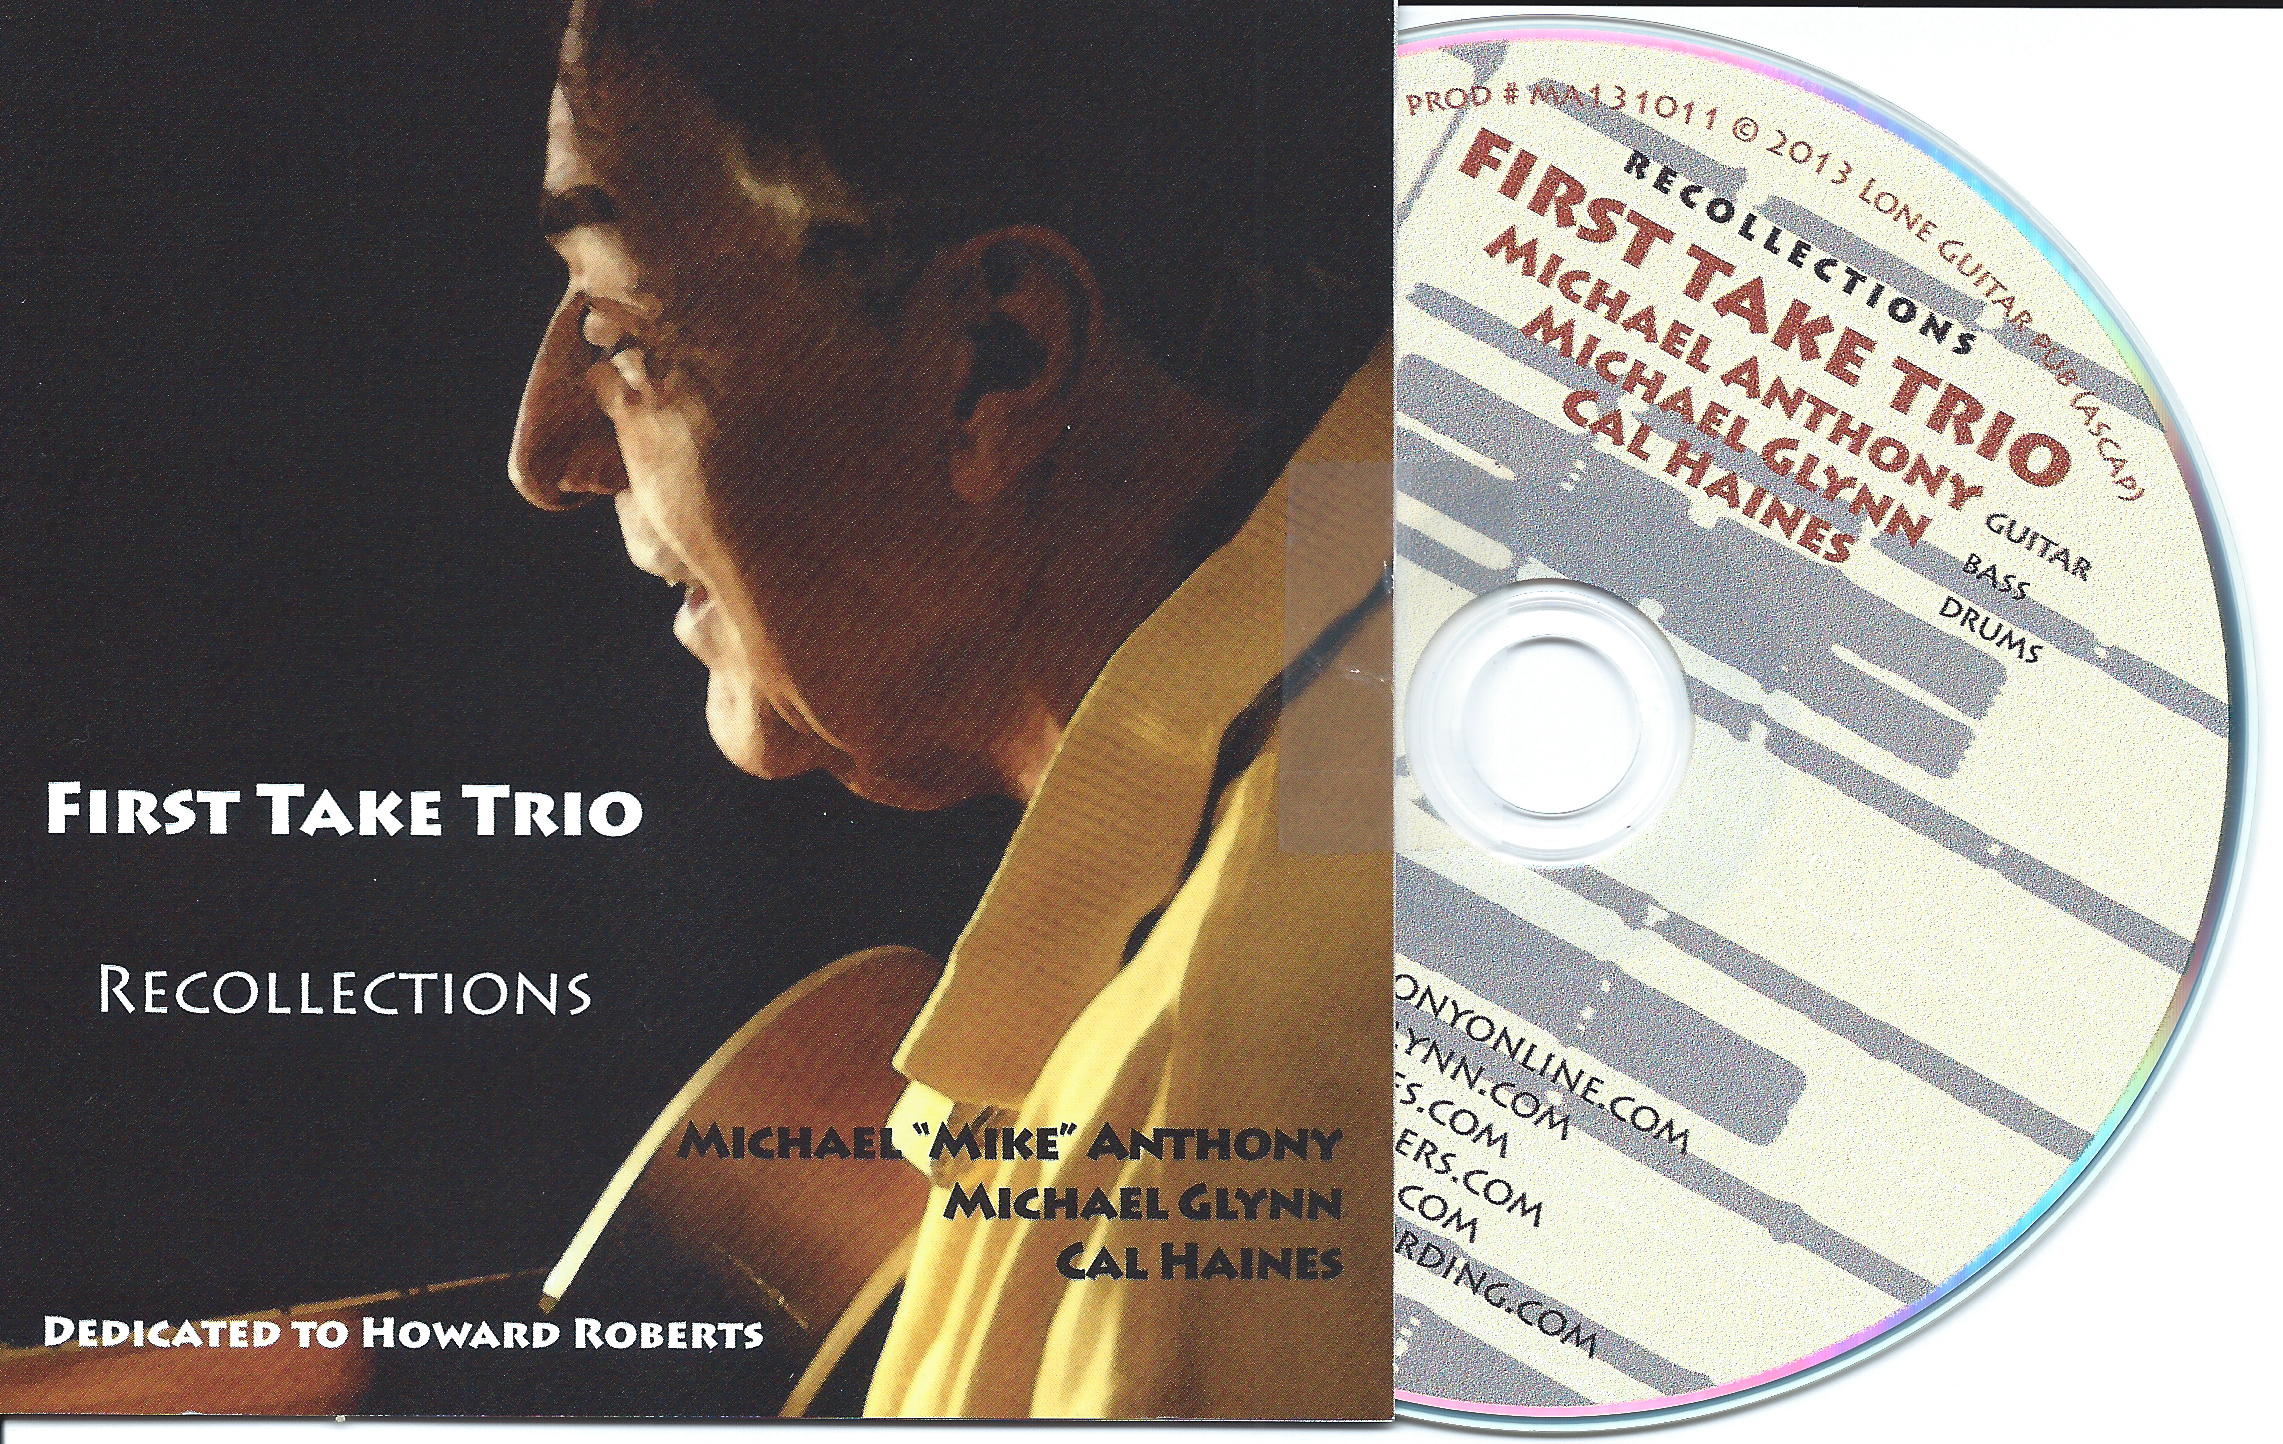 First Take Trio - Recollections